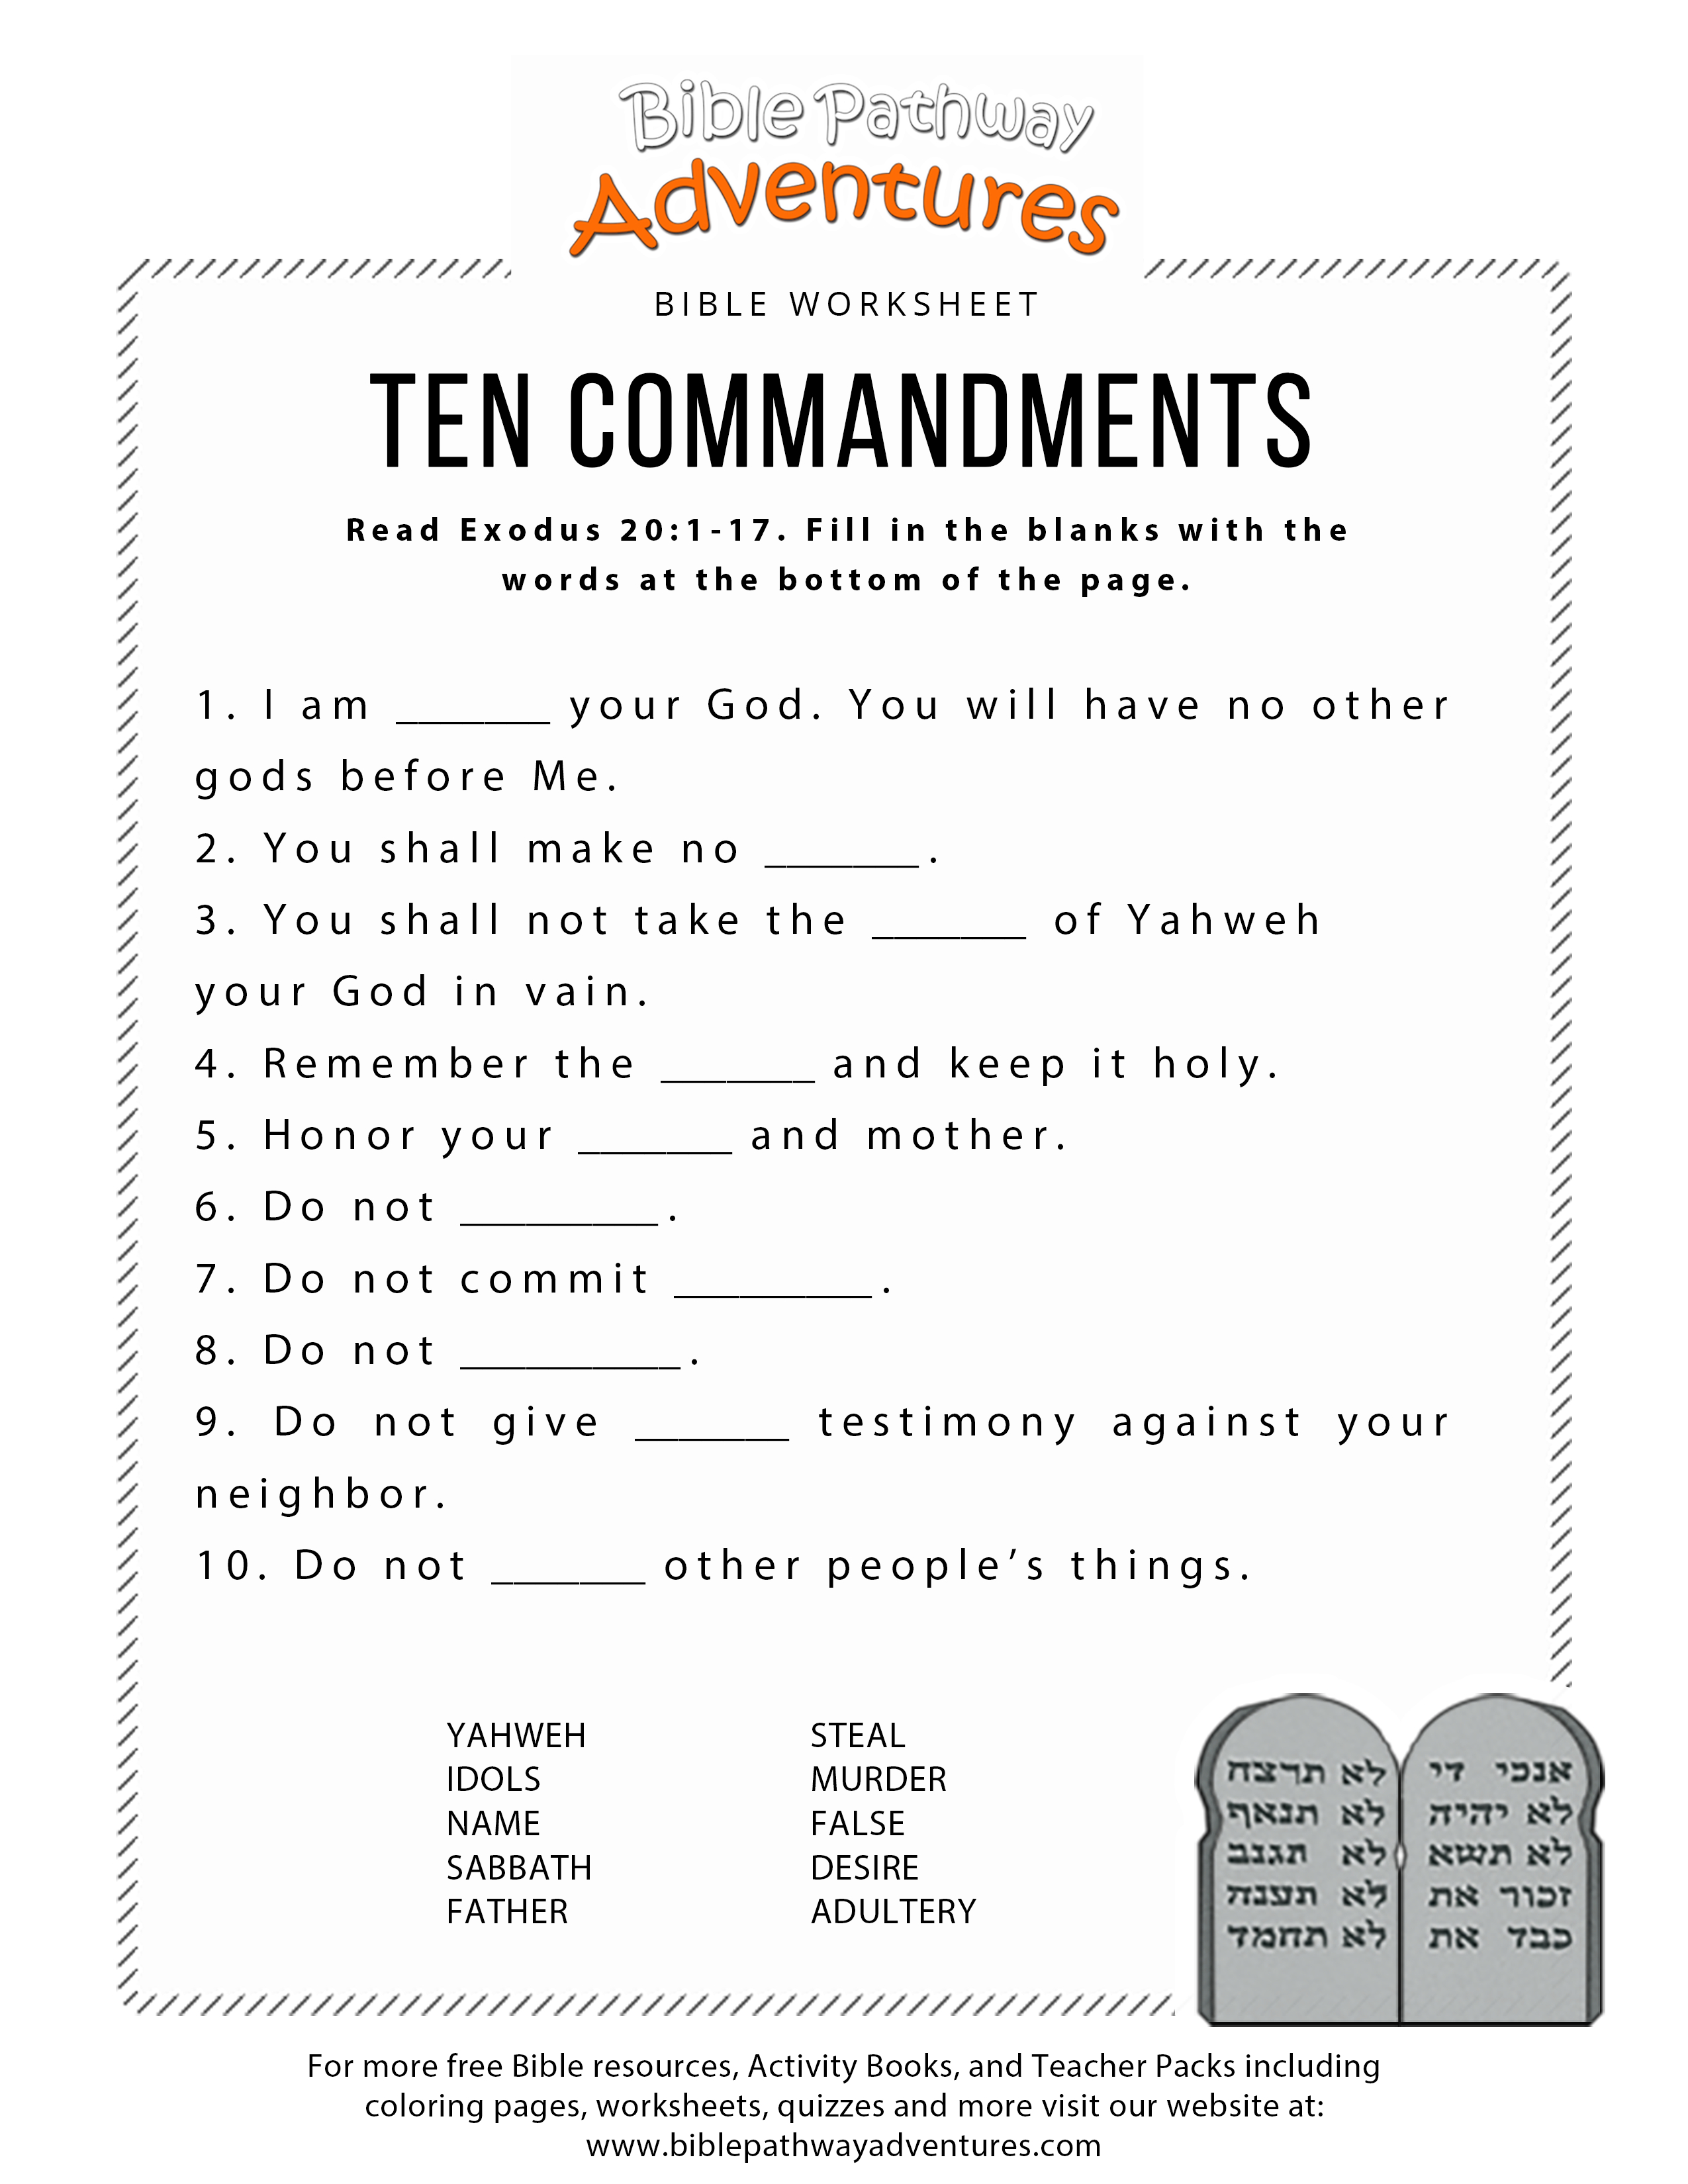 Ten Commandments Worksheet For Kids | Worksheets For Psr | Bible - Free Printable Children's Bible Lessons Worksheets